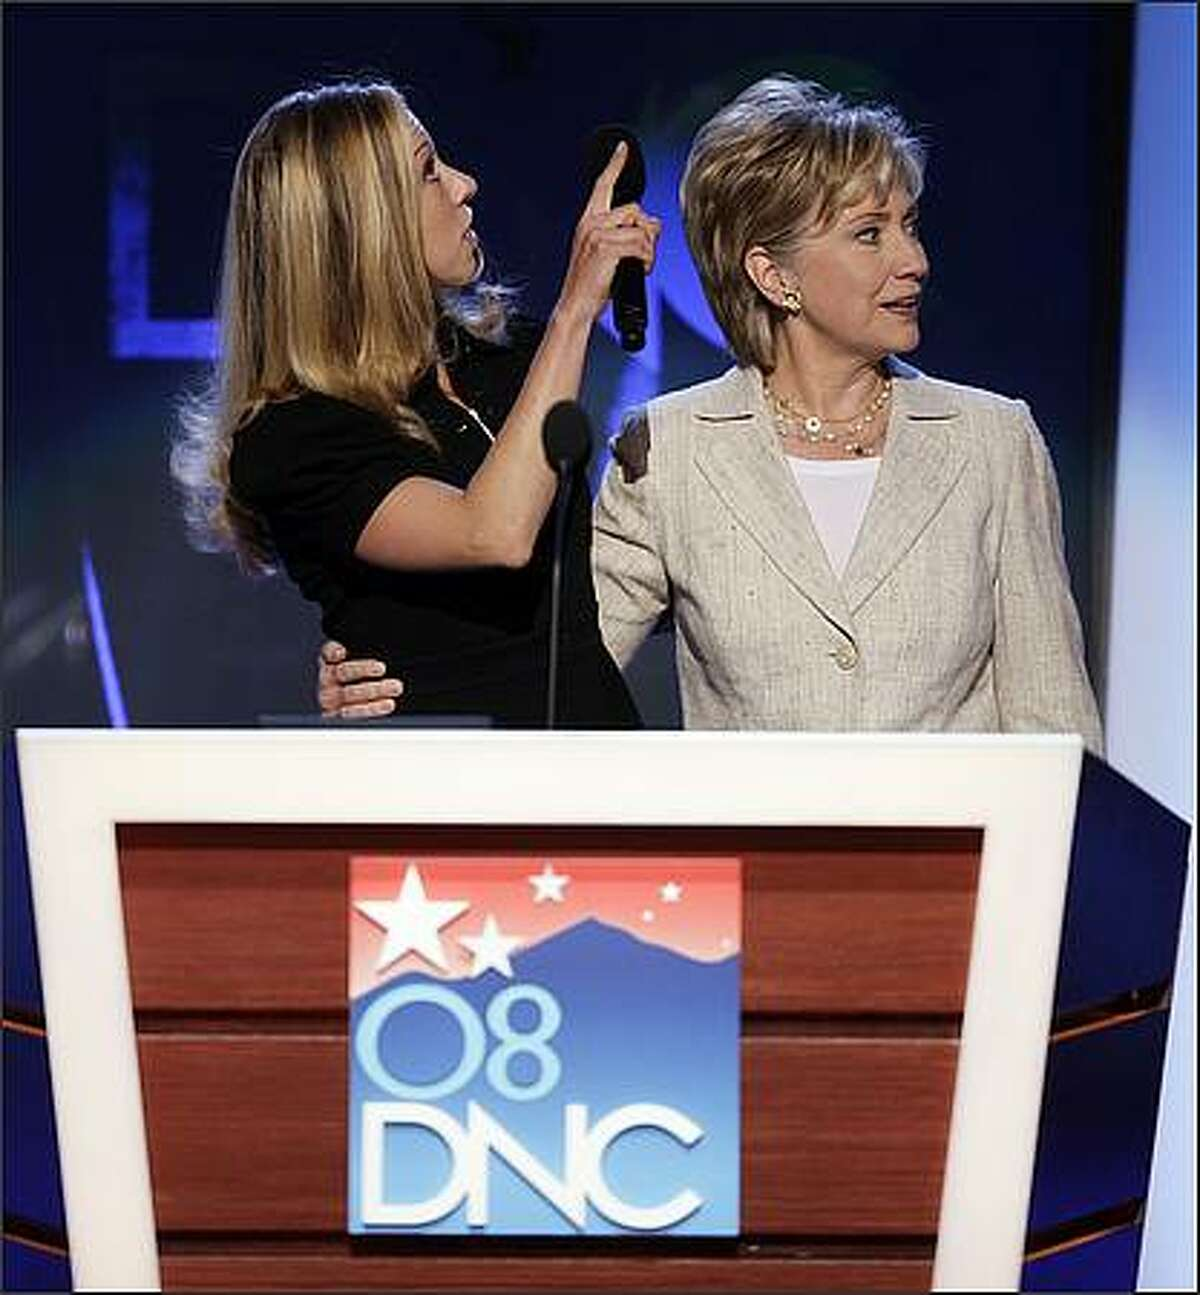 Sen. Hillary Rodham Clinton, D-N.Y., right, tours the podium with her daughter, Chelsea, at the Democratic National Convention in Denver. (AP Photo/Ron Edmonds)